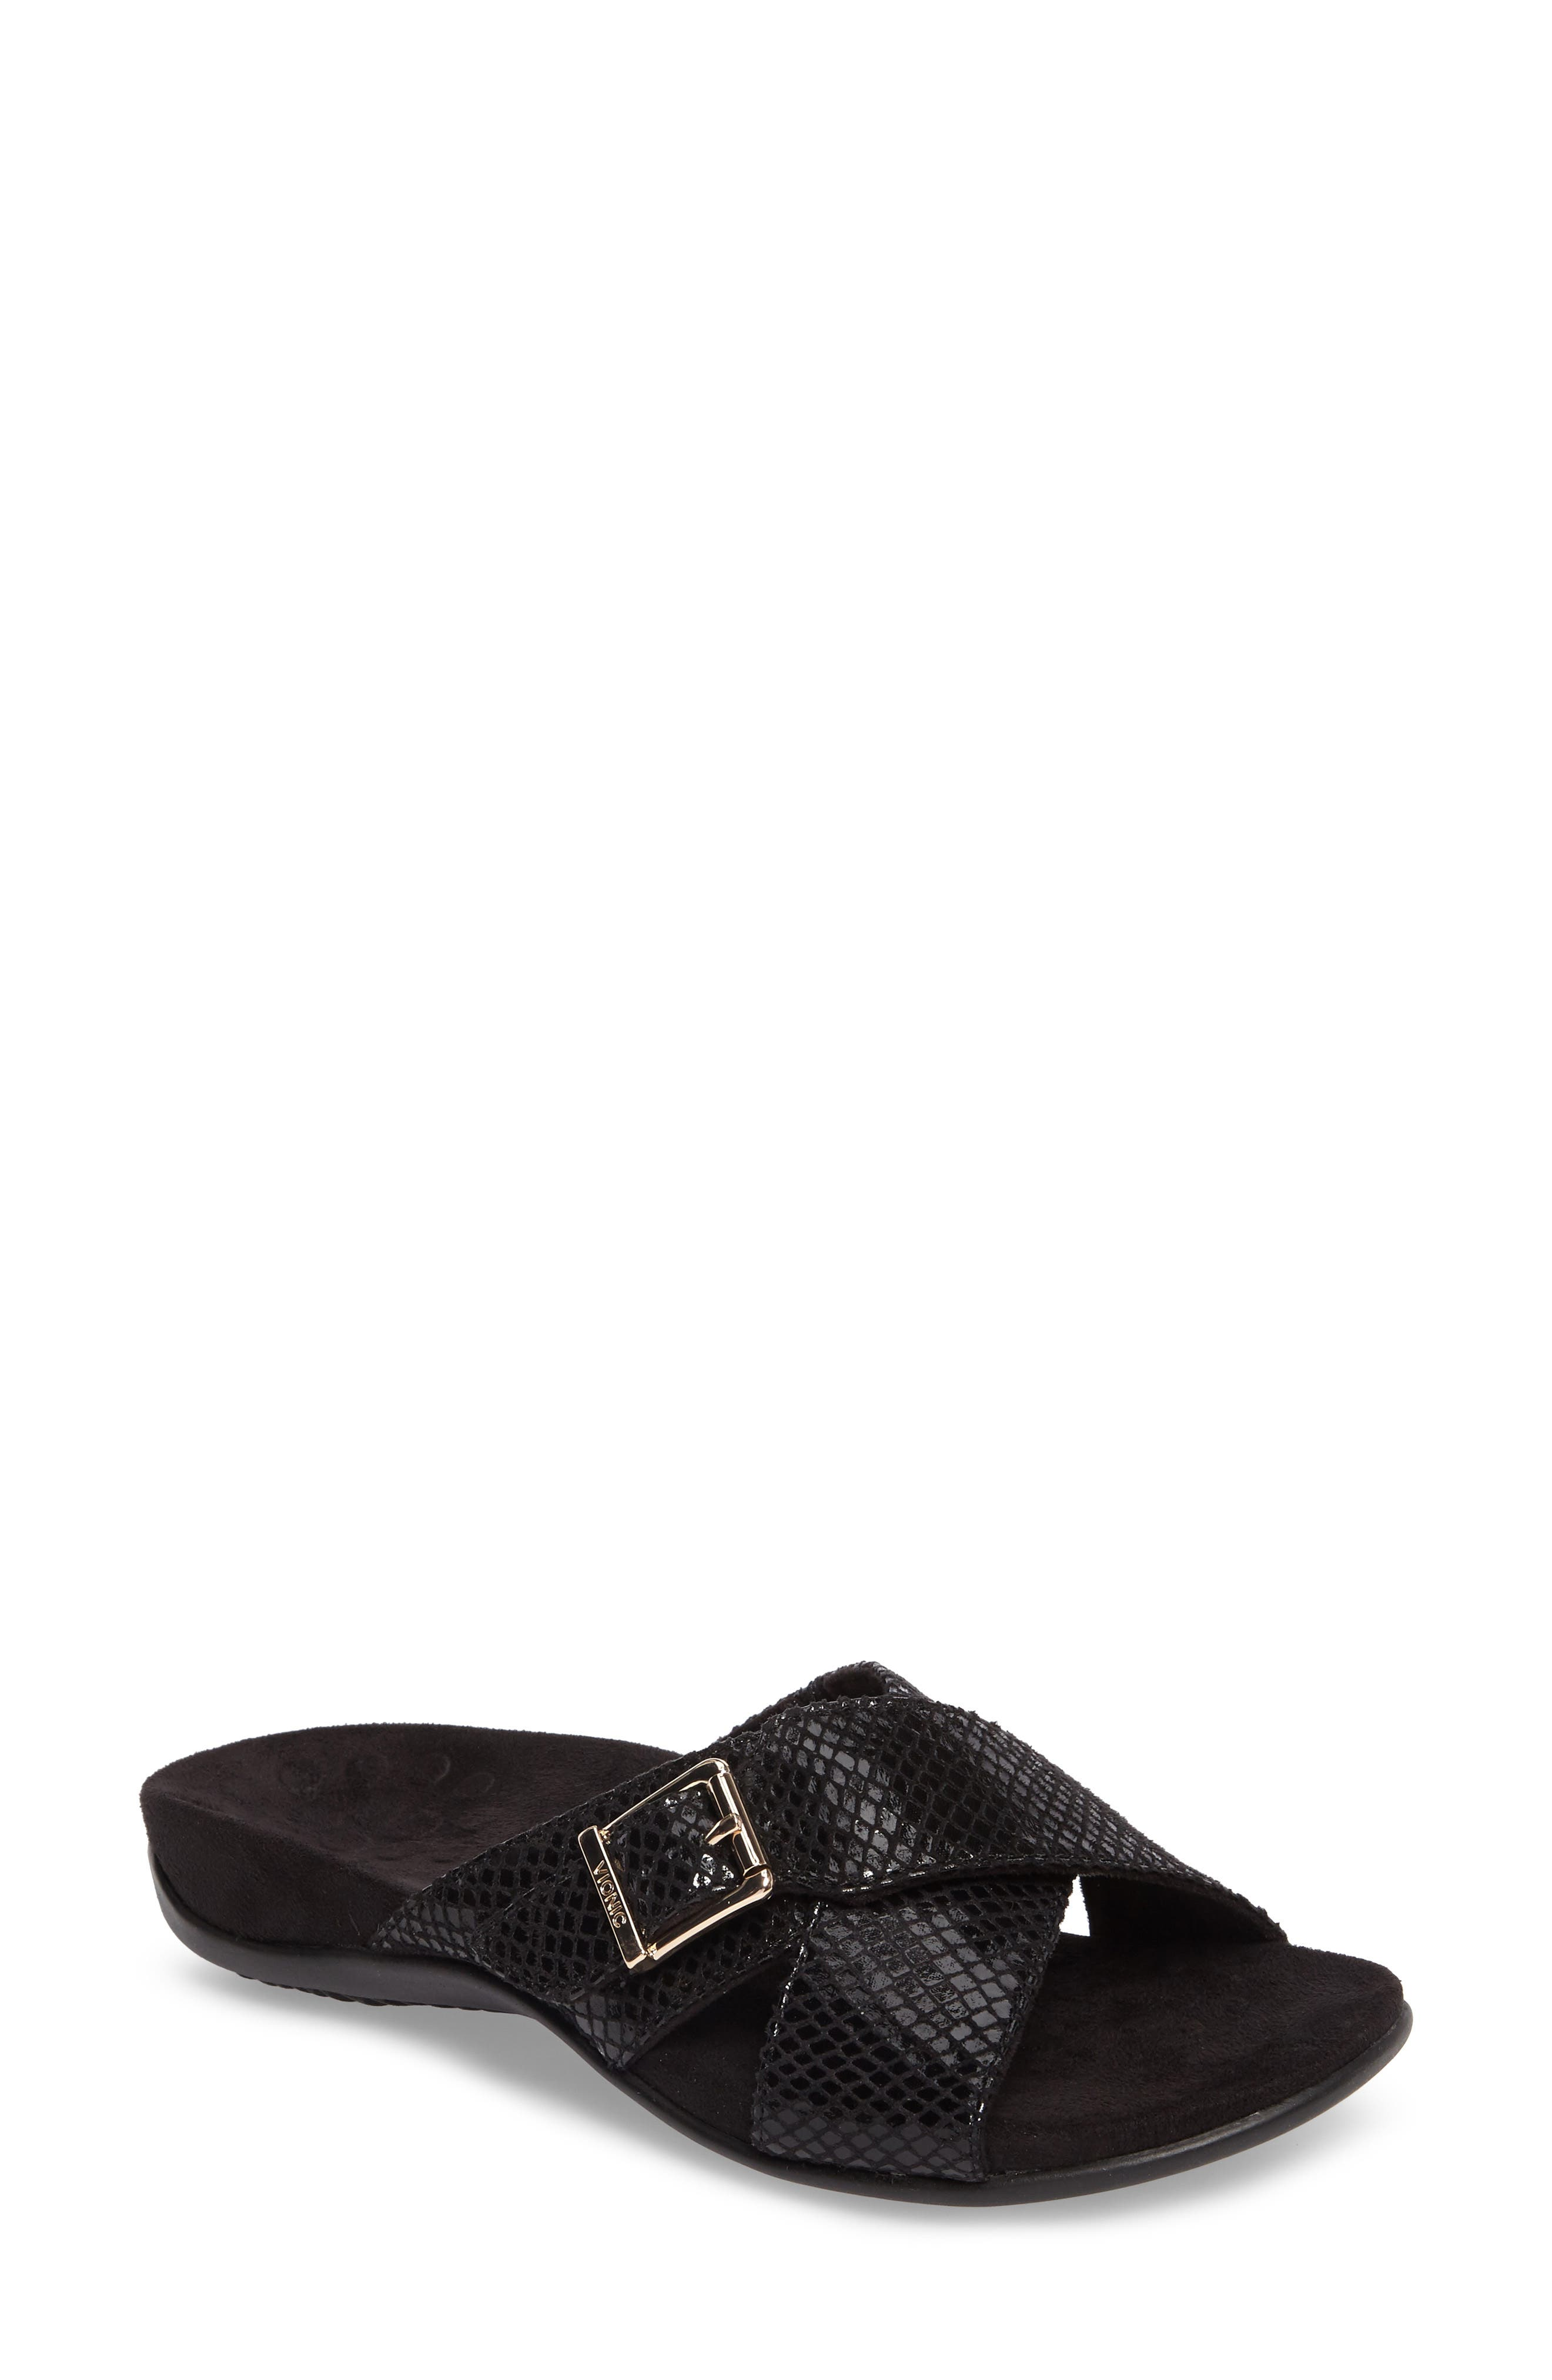 Dorie Cross Strap Slide Sandal,                         Main,                         color, BLACK SNAKE FAUX LEATHER